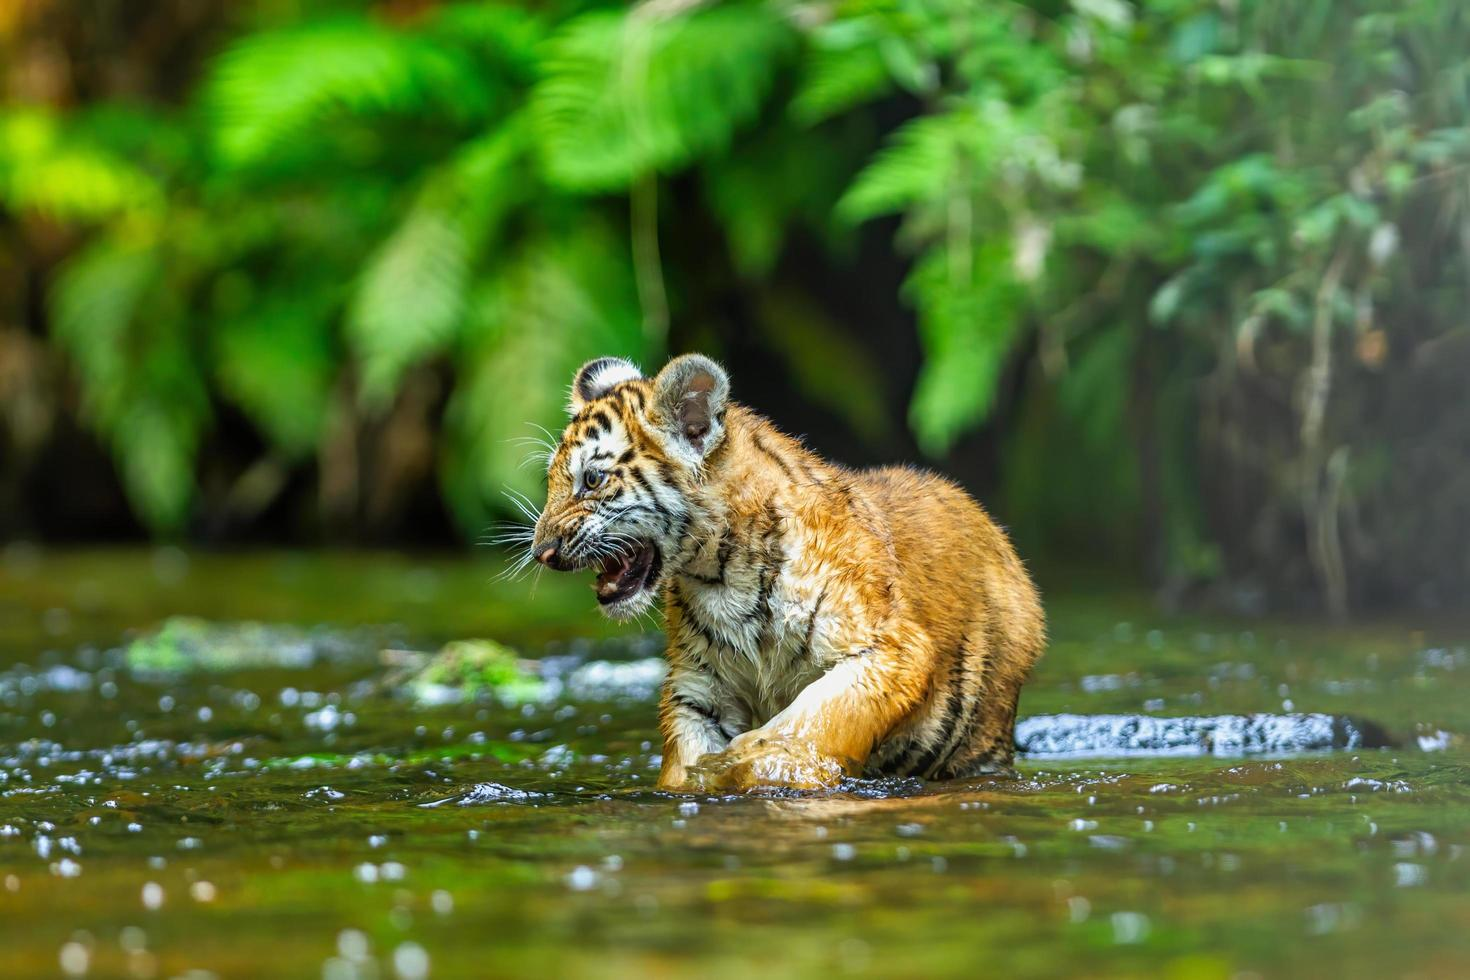 A tiger cub wades through the water in the taiga, or boreal forest photo